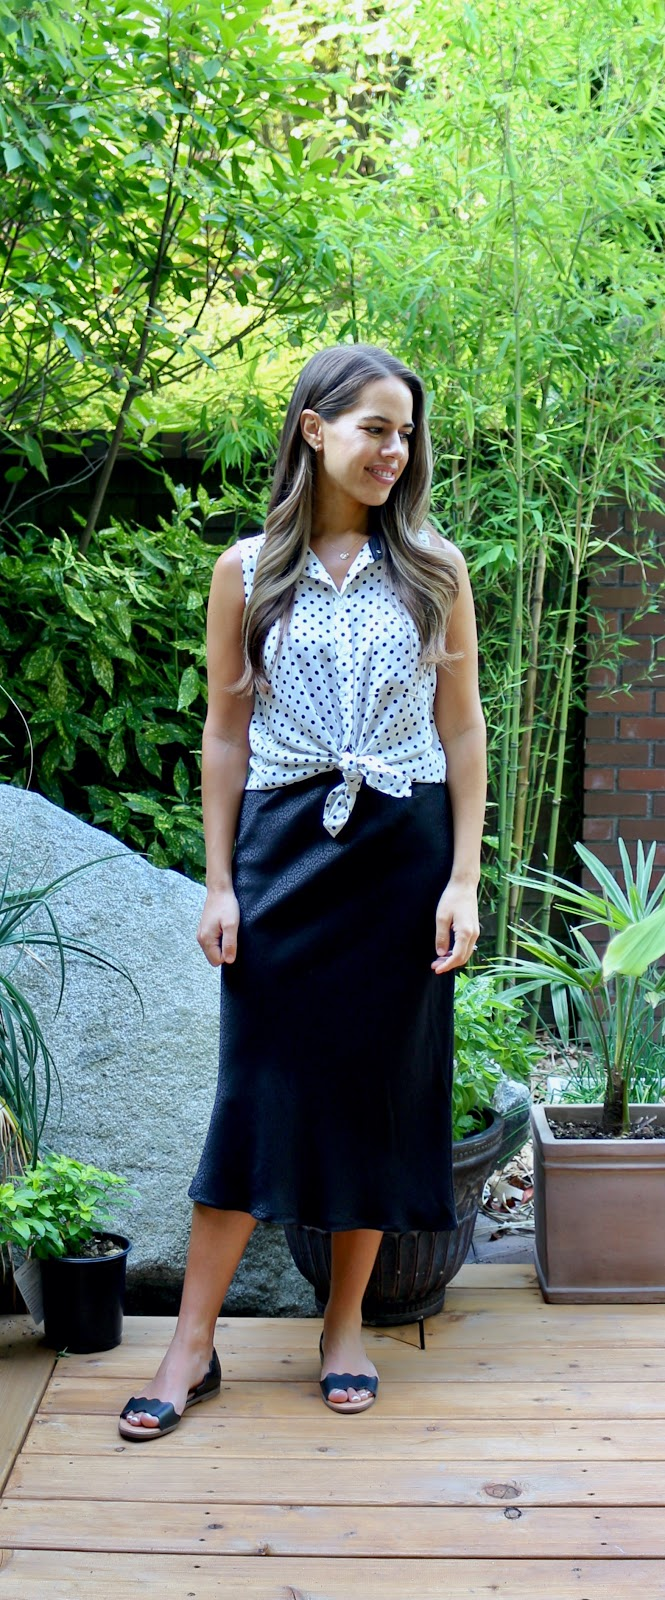 Jules in Flats - Sleeveless Polka Dot Top + Midi Skirt (Business Casual Workwear on a Budget)